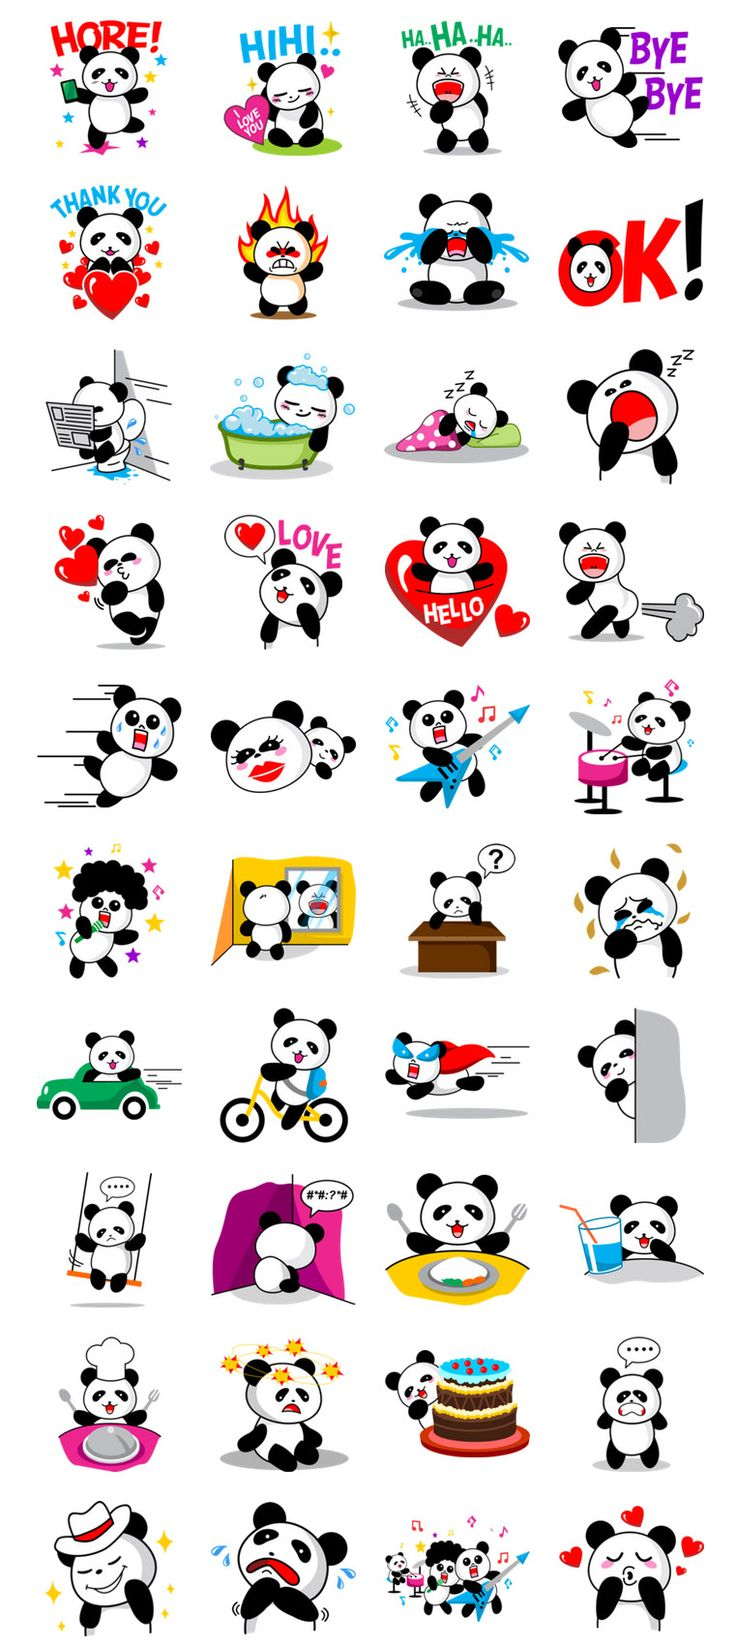 #Line #Sticker #Vector #Panda CULIPA - Cute Little Panda Use CULIPA - Cute Little Panda stickers to bring even more emotions to your chats!